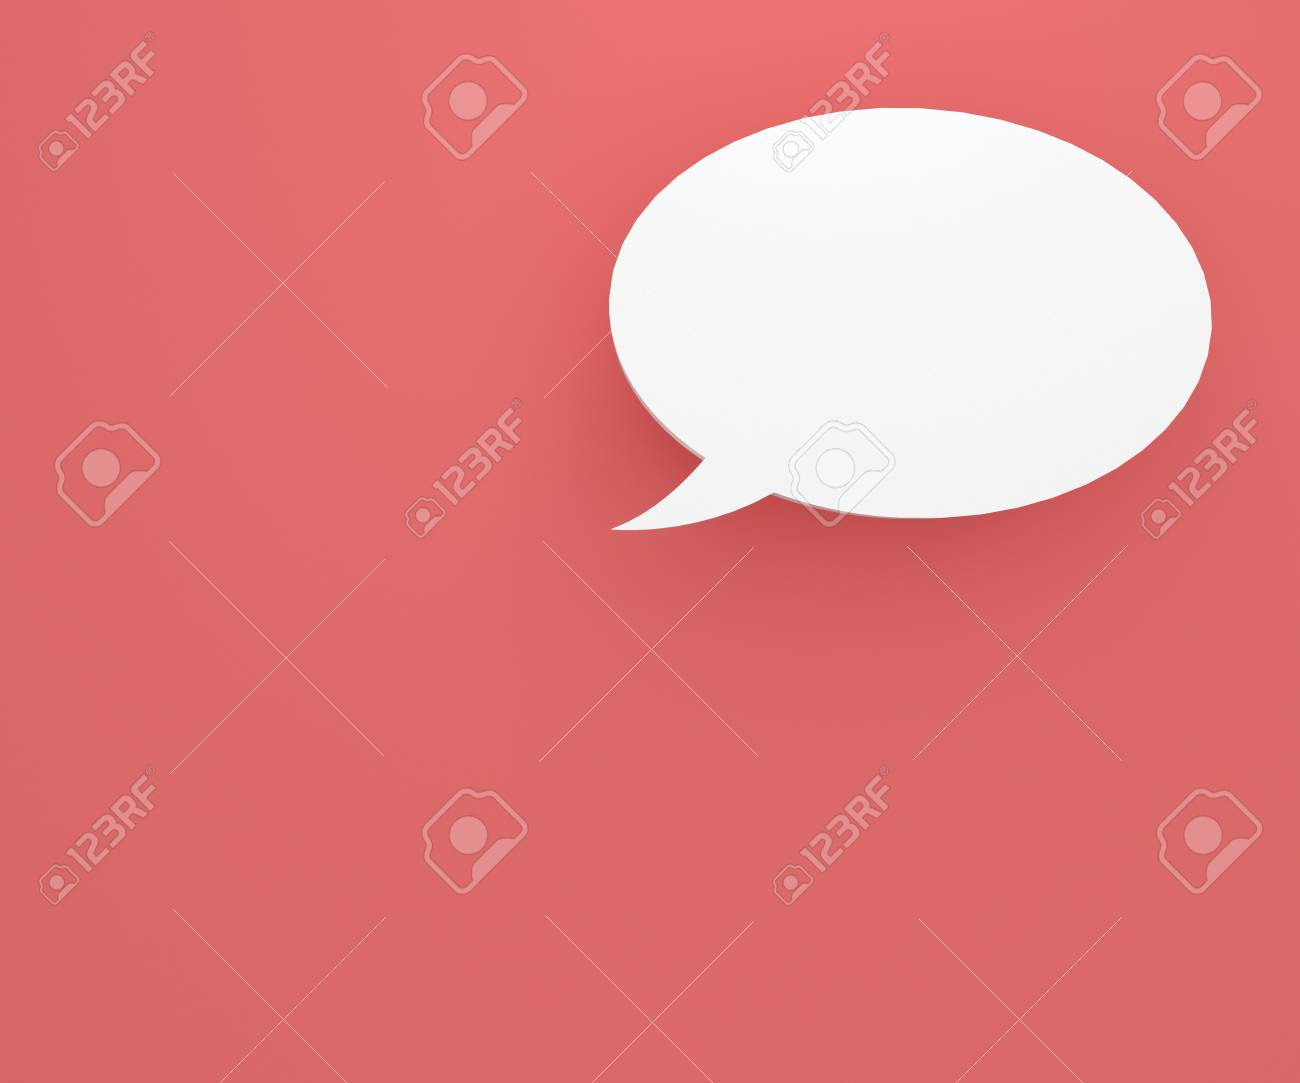 colourful background with talking bubbles, to put person and message over the background. Stock Photo - 17455918